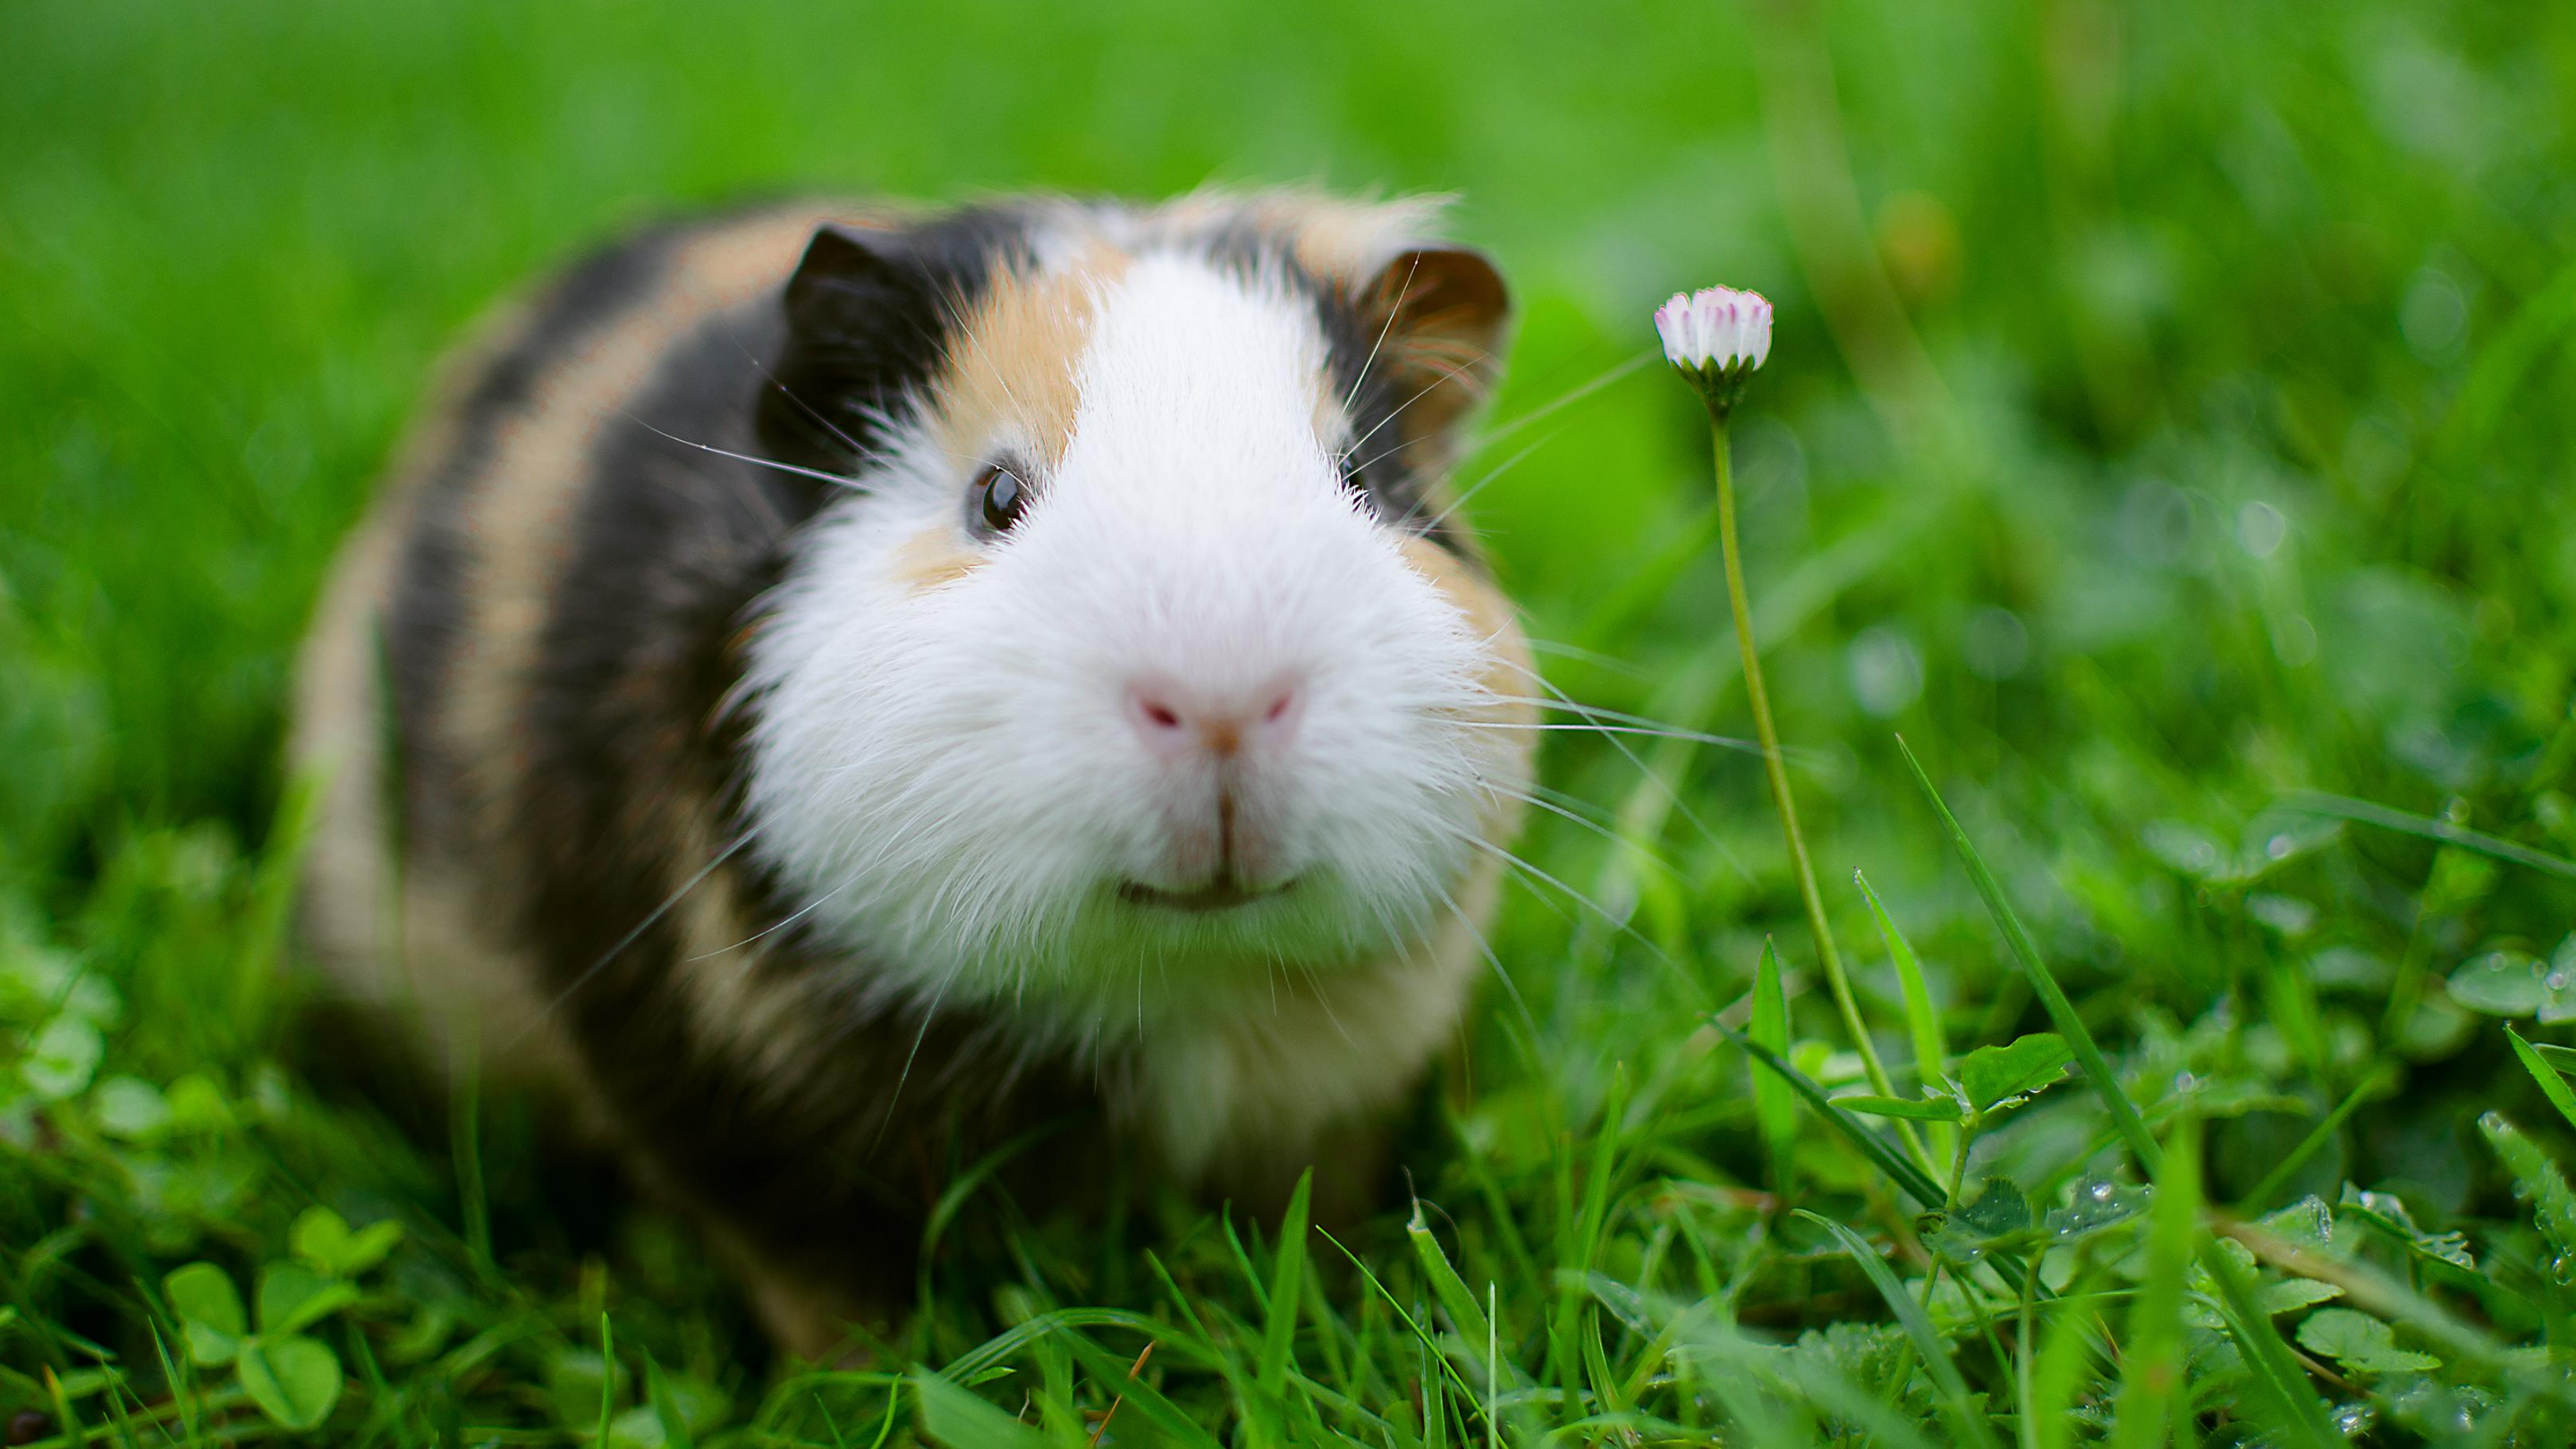 A guinea pig looks as if it it smiling as it stands in green grass